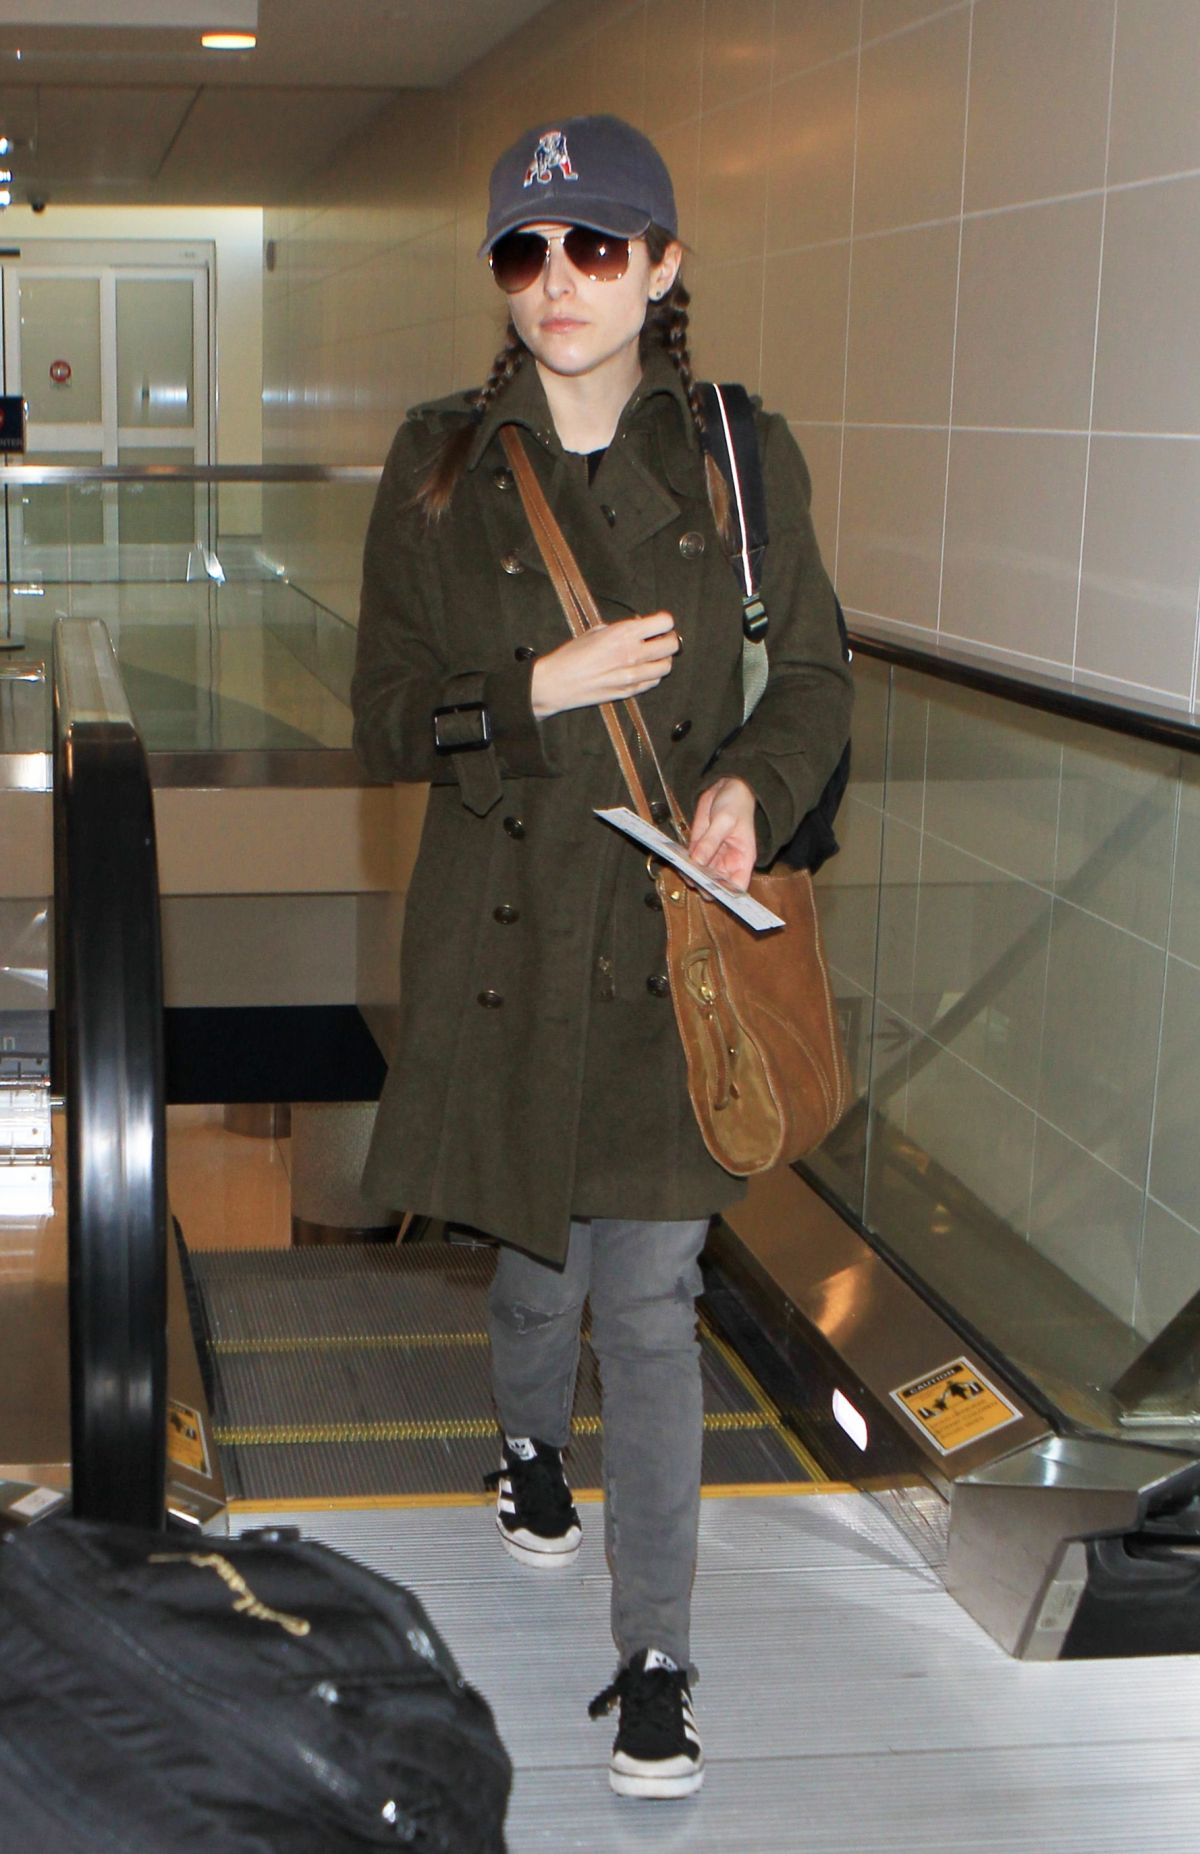 ANNA KENDRICK at Los Angeles International Airport 12/08/2015